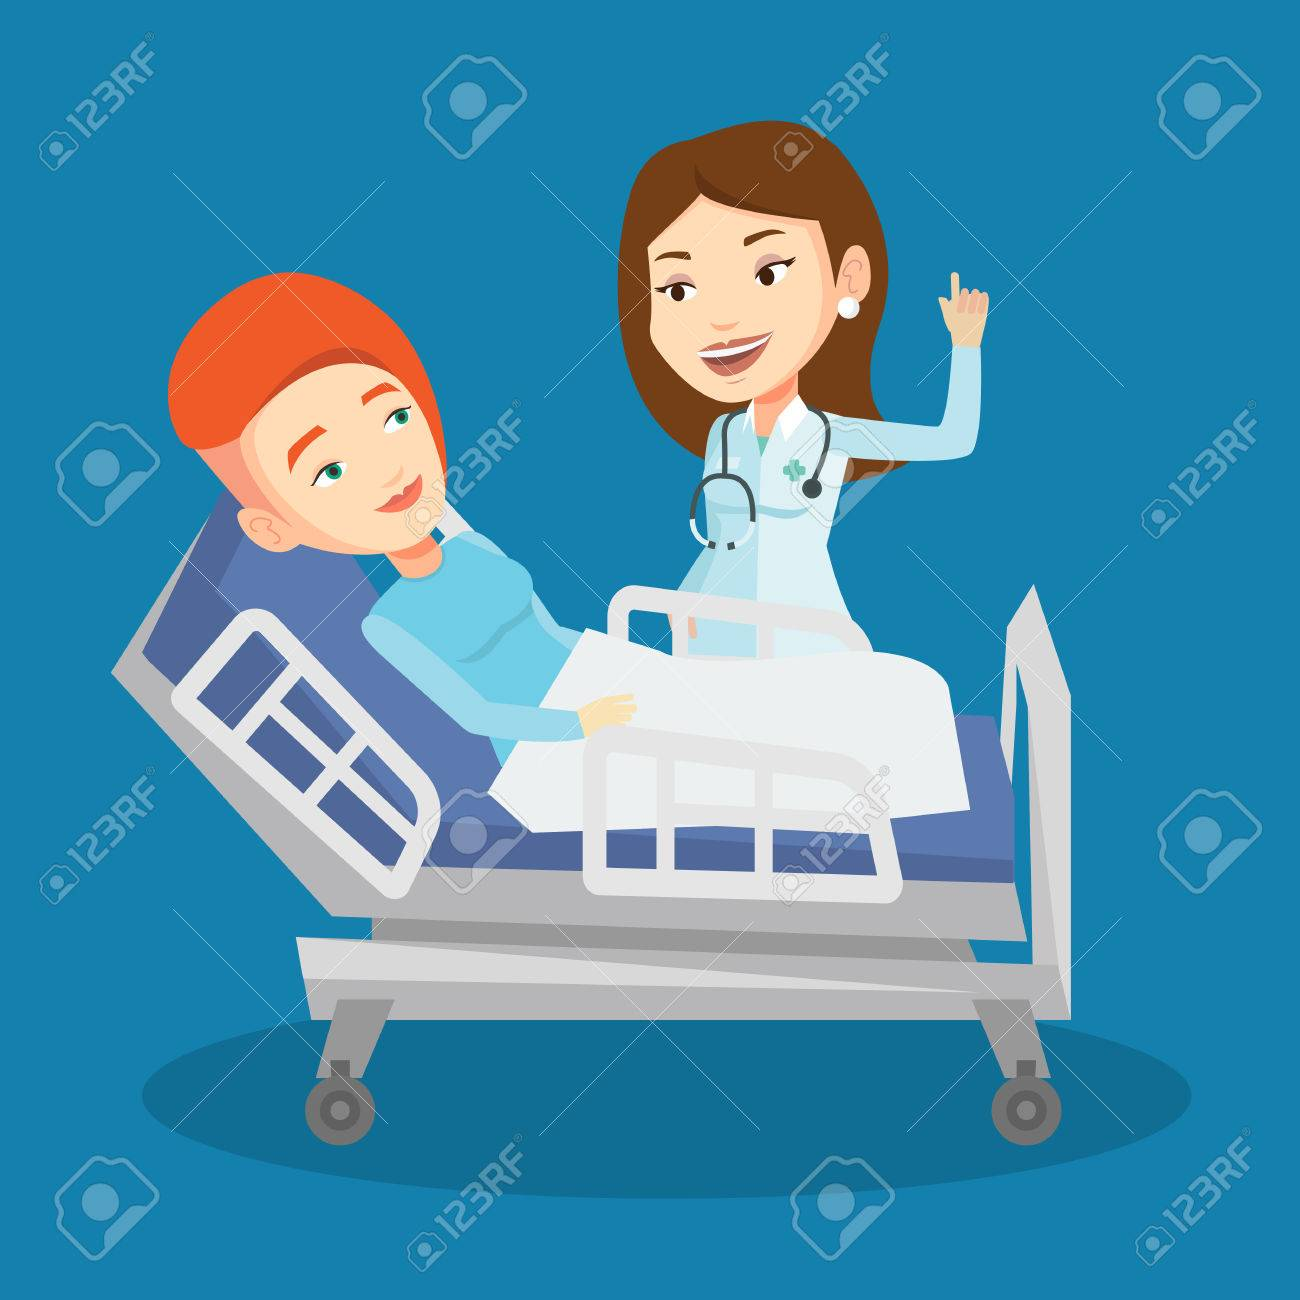 Caucasian female doctor visiting patient. Doctor pointing finger up during visiting of patient. Woman lying in hospital bed while doctor visits her. Vector flat design illustration. Square layout. - 68315931